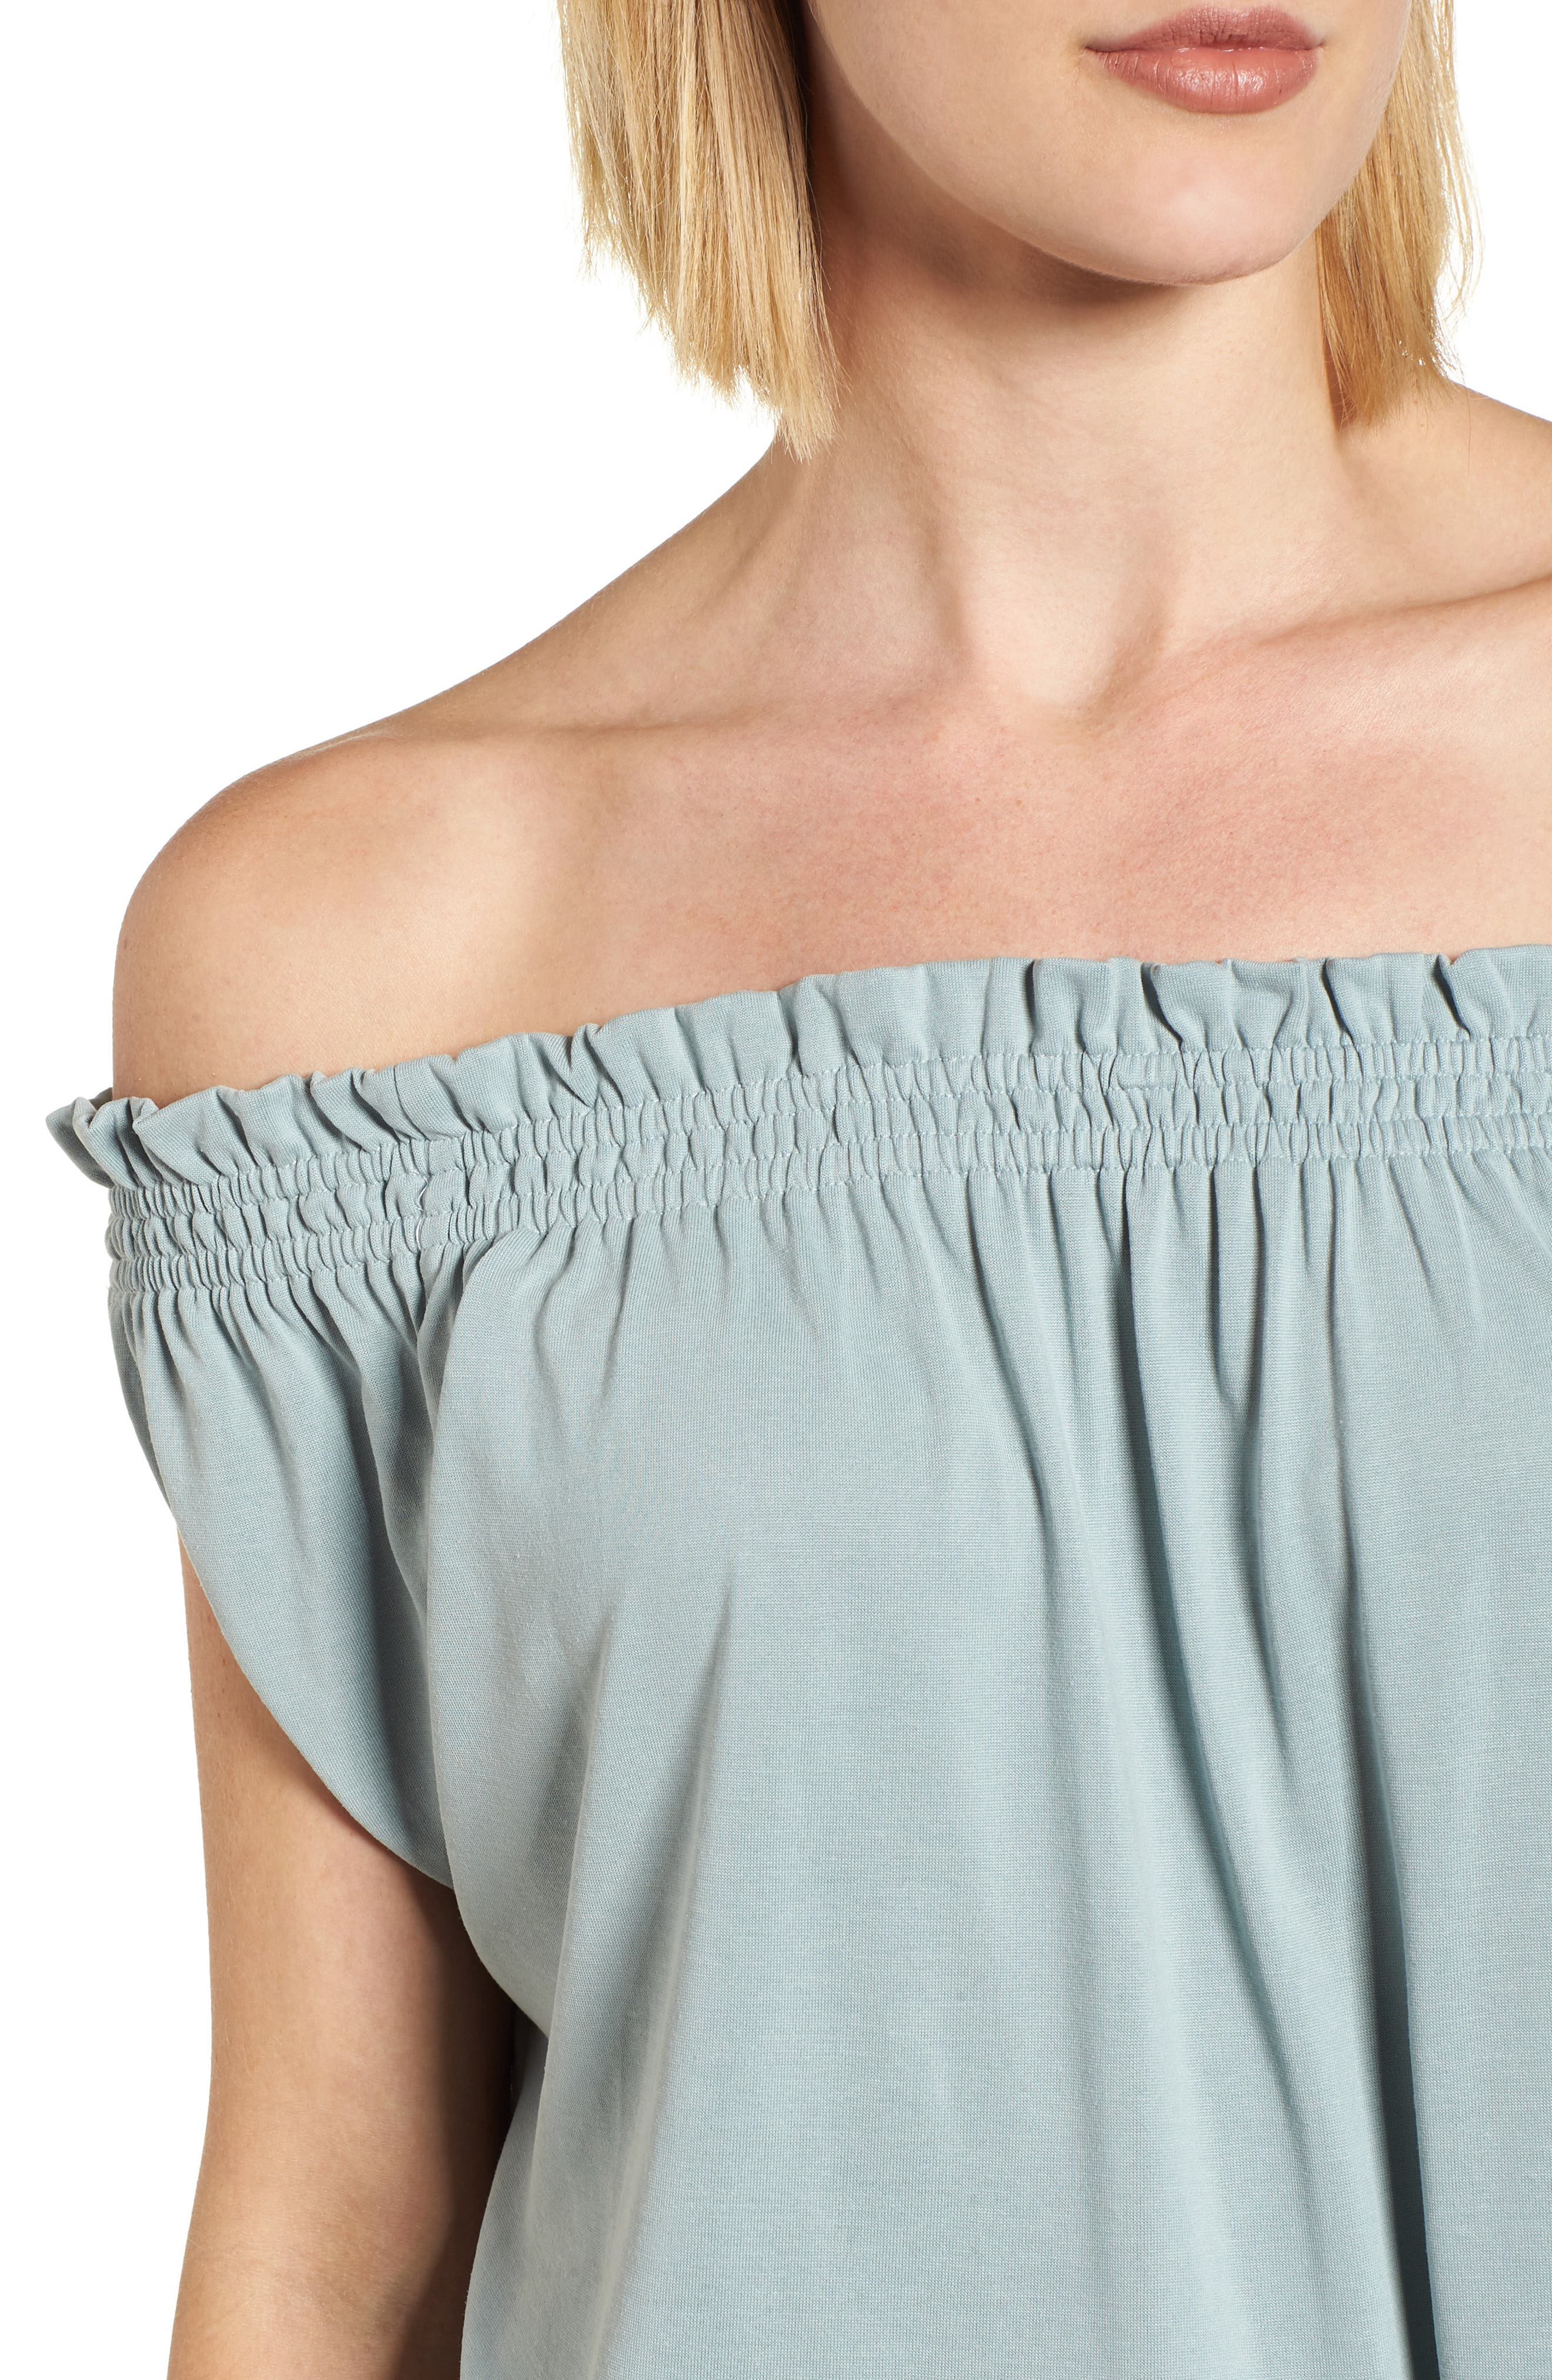 Off the Shoulder Top,                             Alternate thumbnail 4, color,                             310